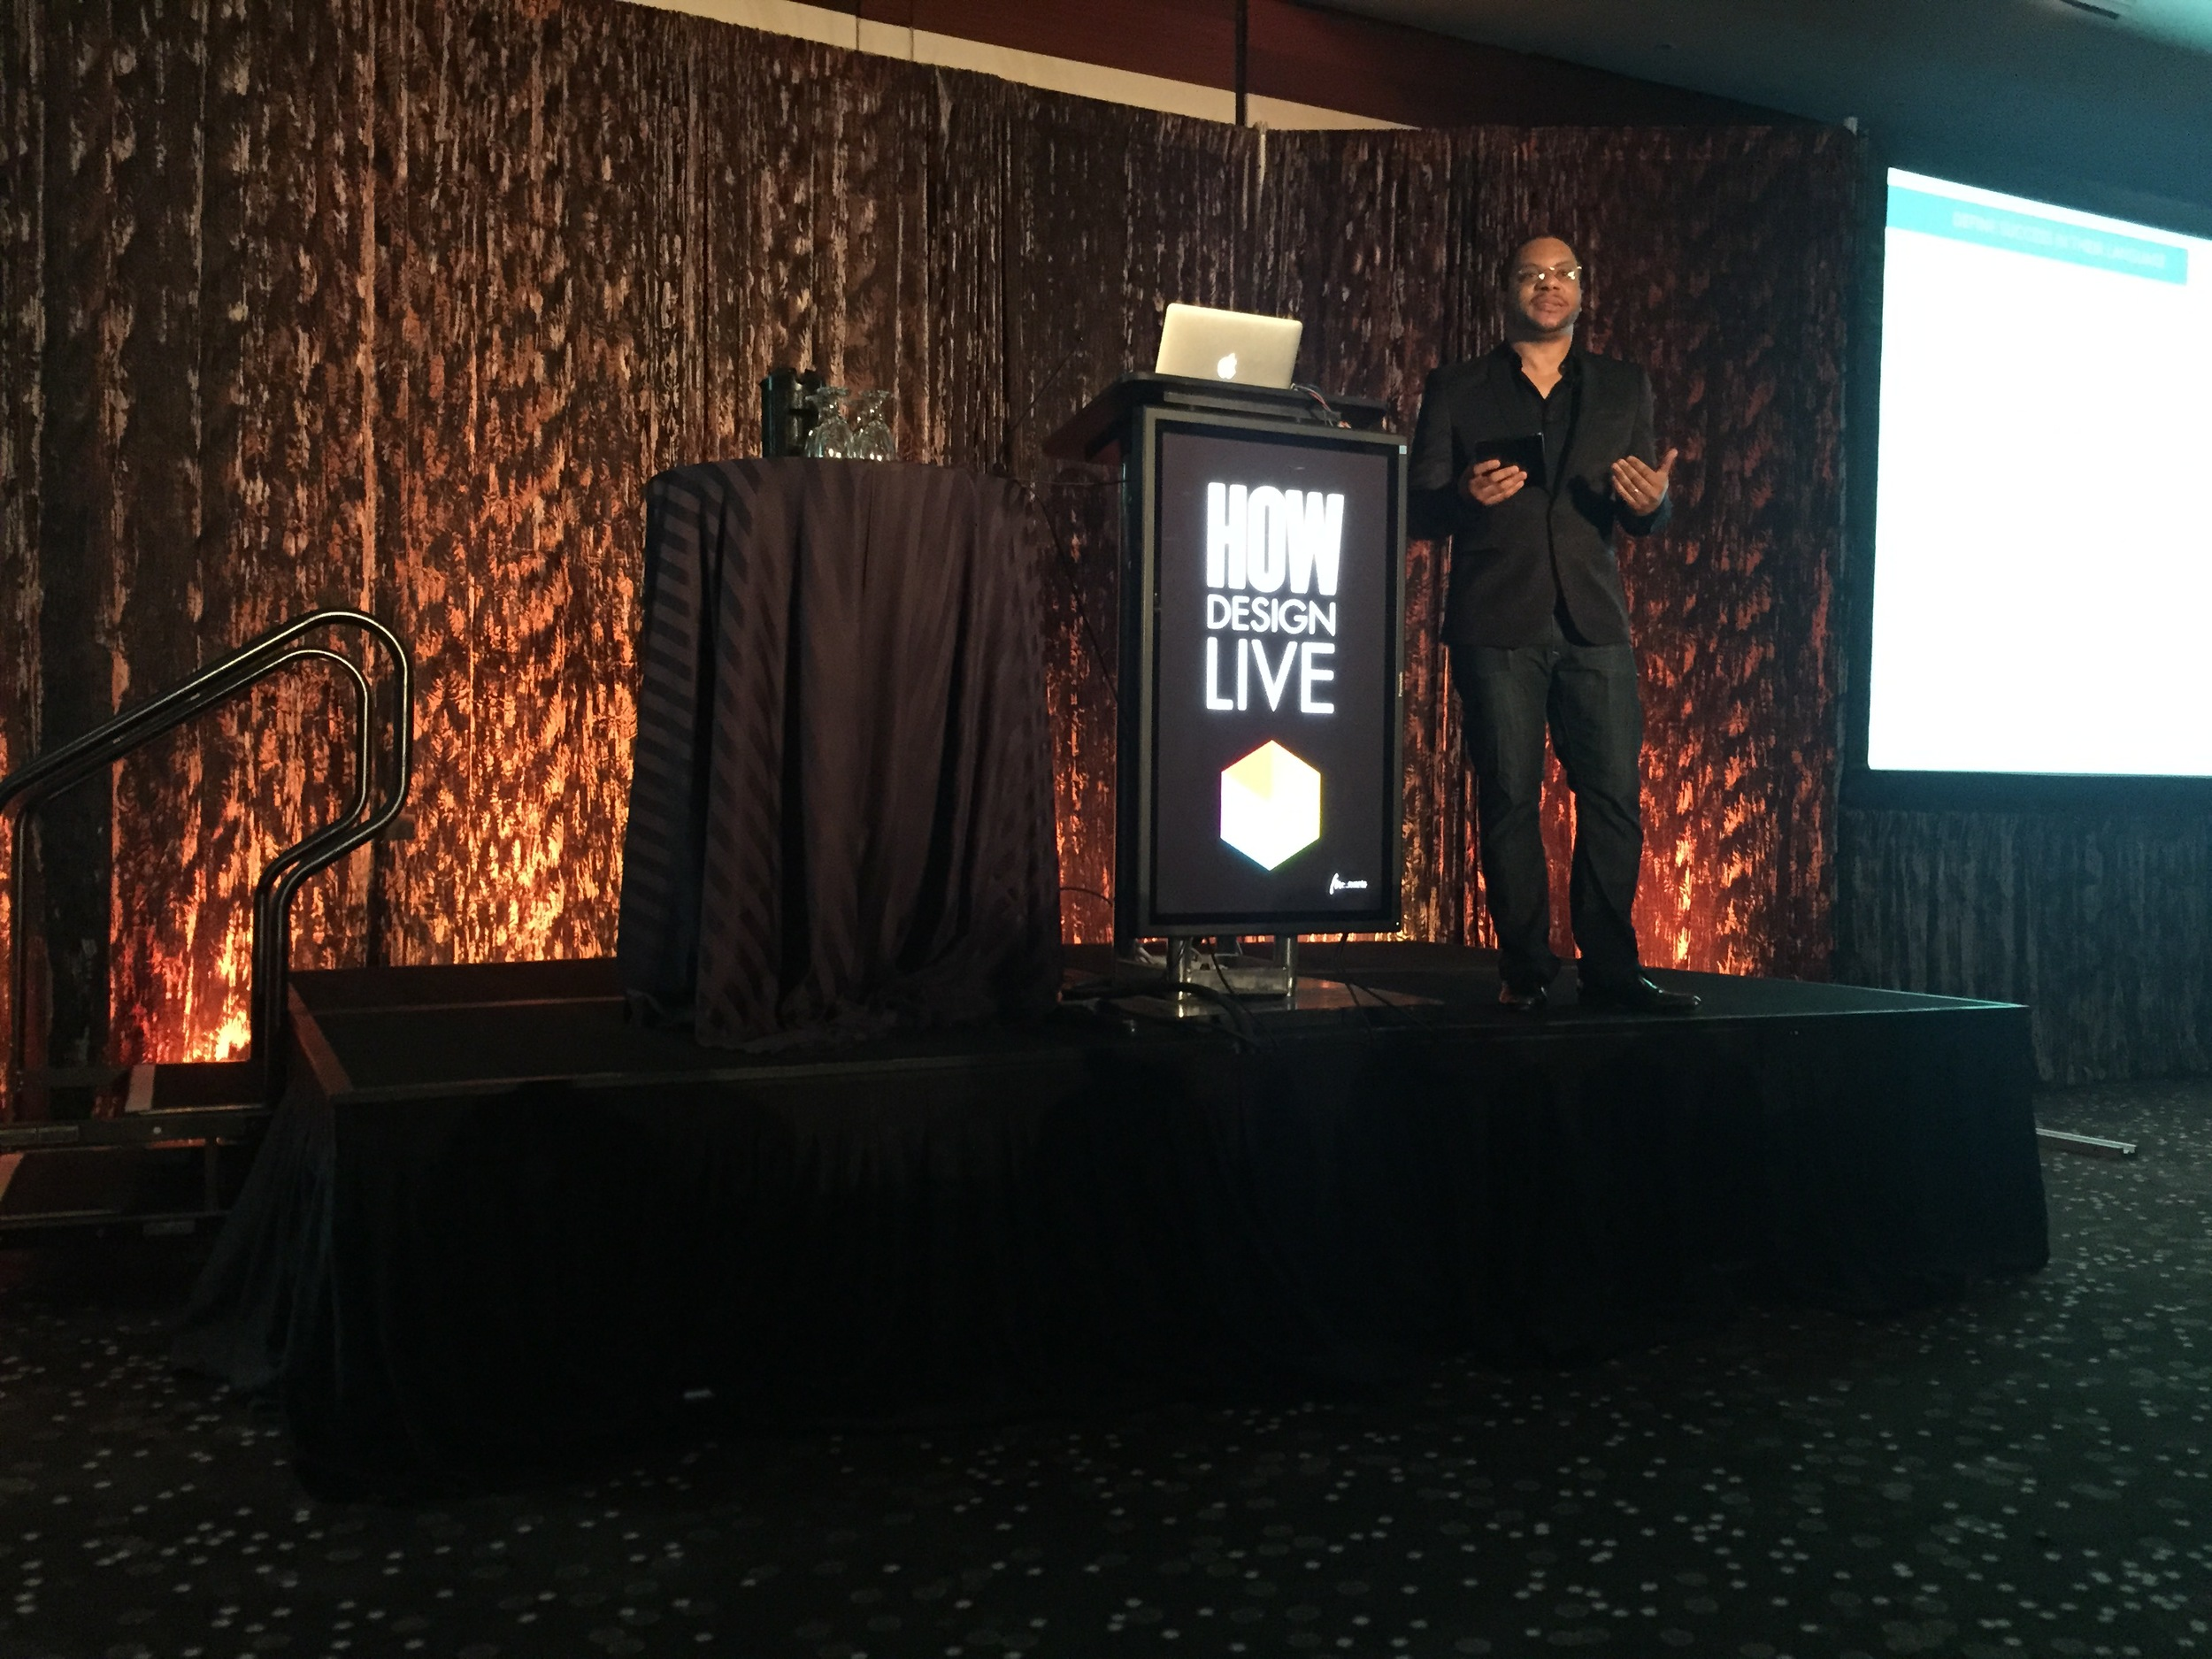 Providing Value Through Creative Business Solutions by Douglas Davis  was presented at HOW DESIGN LIVE in Chicago May 7th, 2015 to an audience of 300 Designers, Art Directors, Brand Managers, Solopreneurs, Marketing Managers and Copywriters.